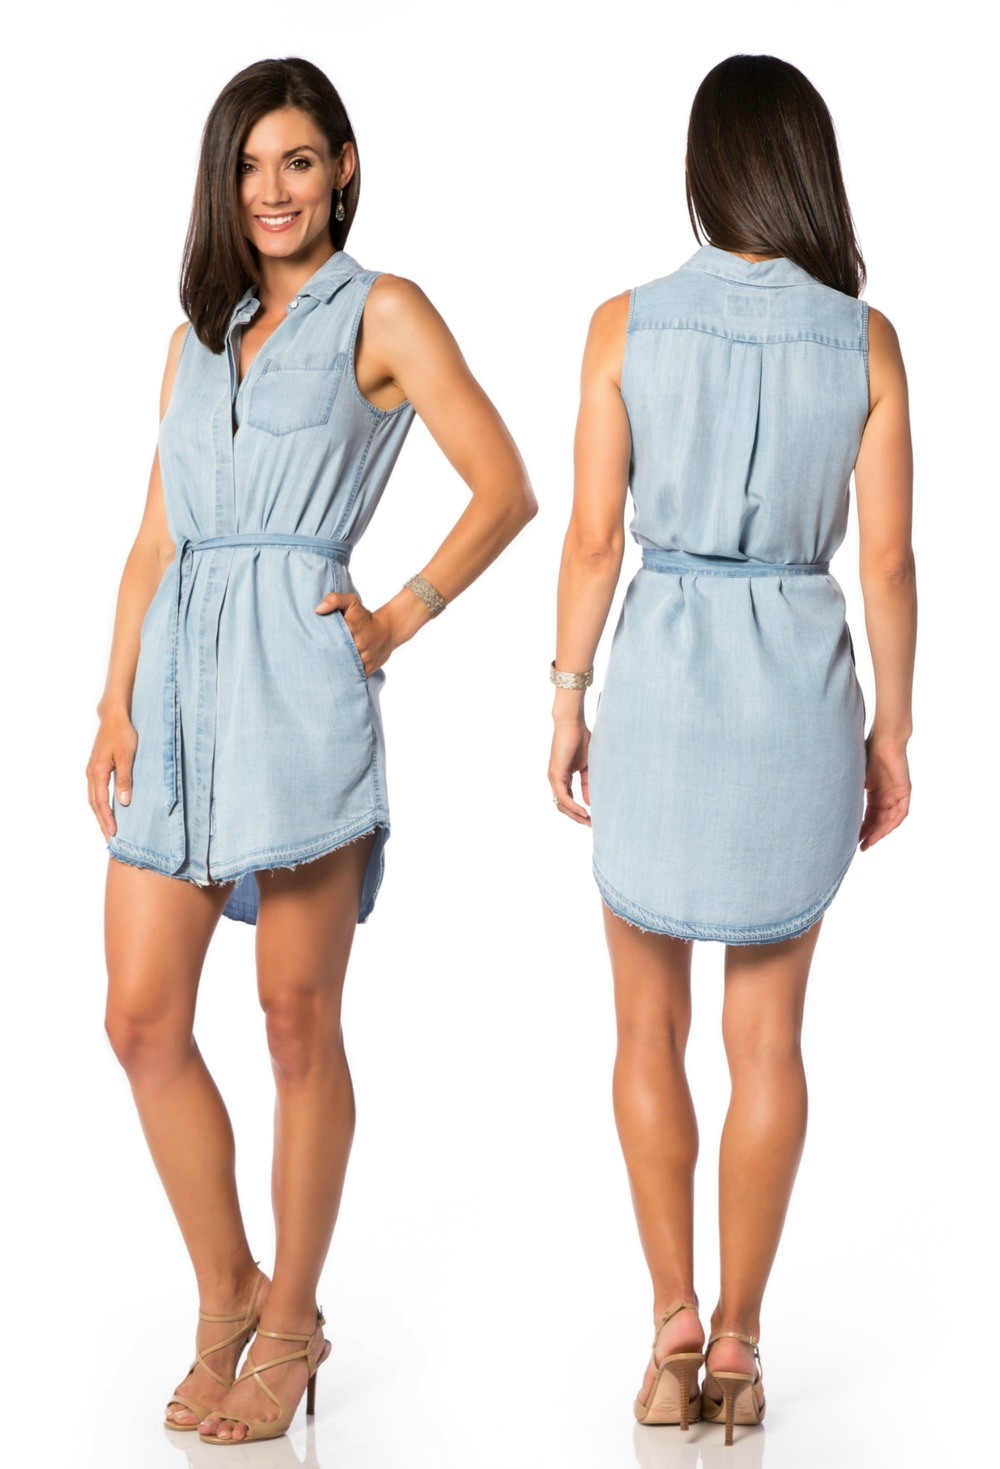 BLUE SHIRT SHOP Mercer & Spring Crosby & Broome Denim Dress Available ONLINE & In Store